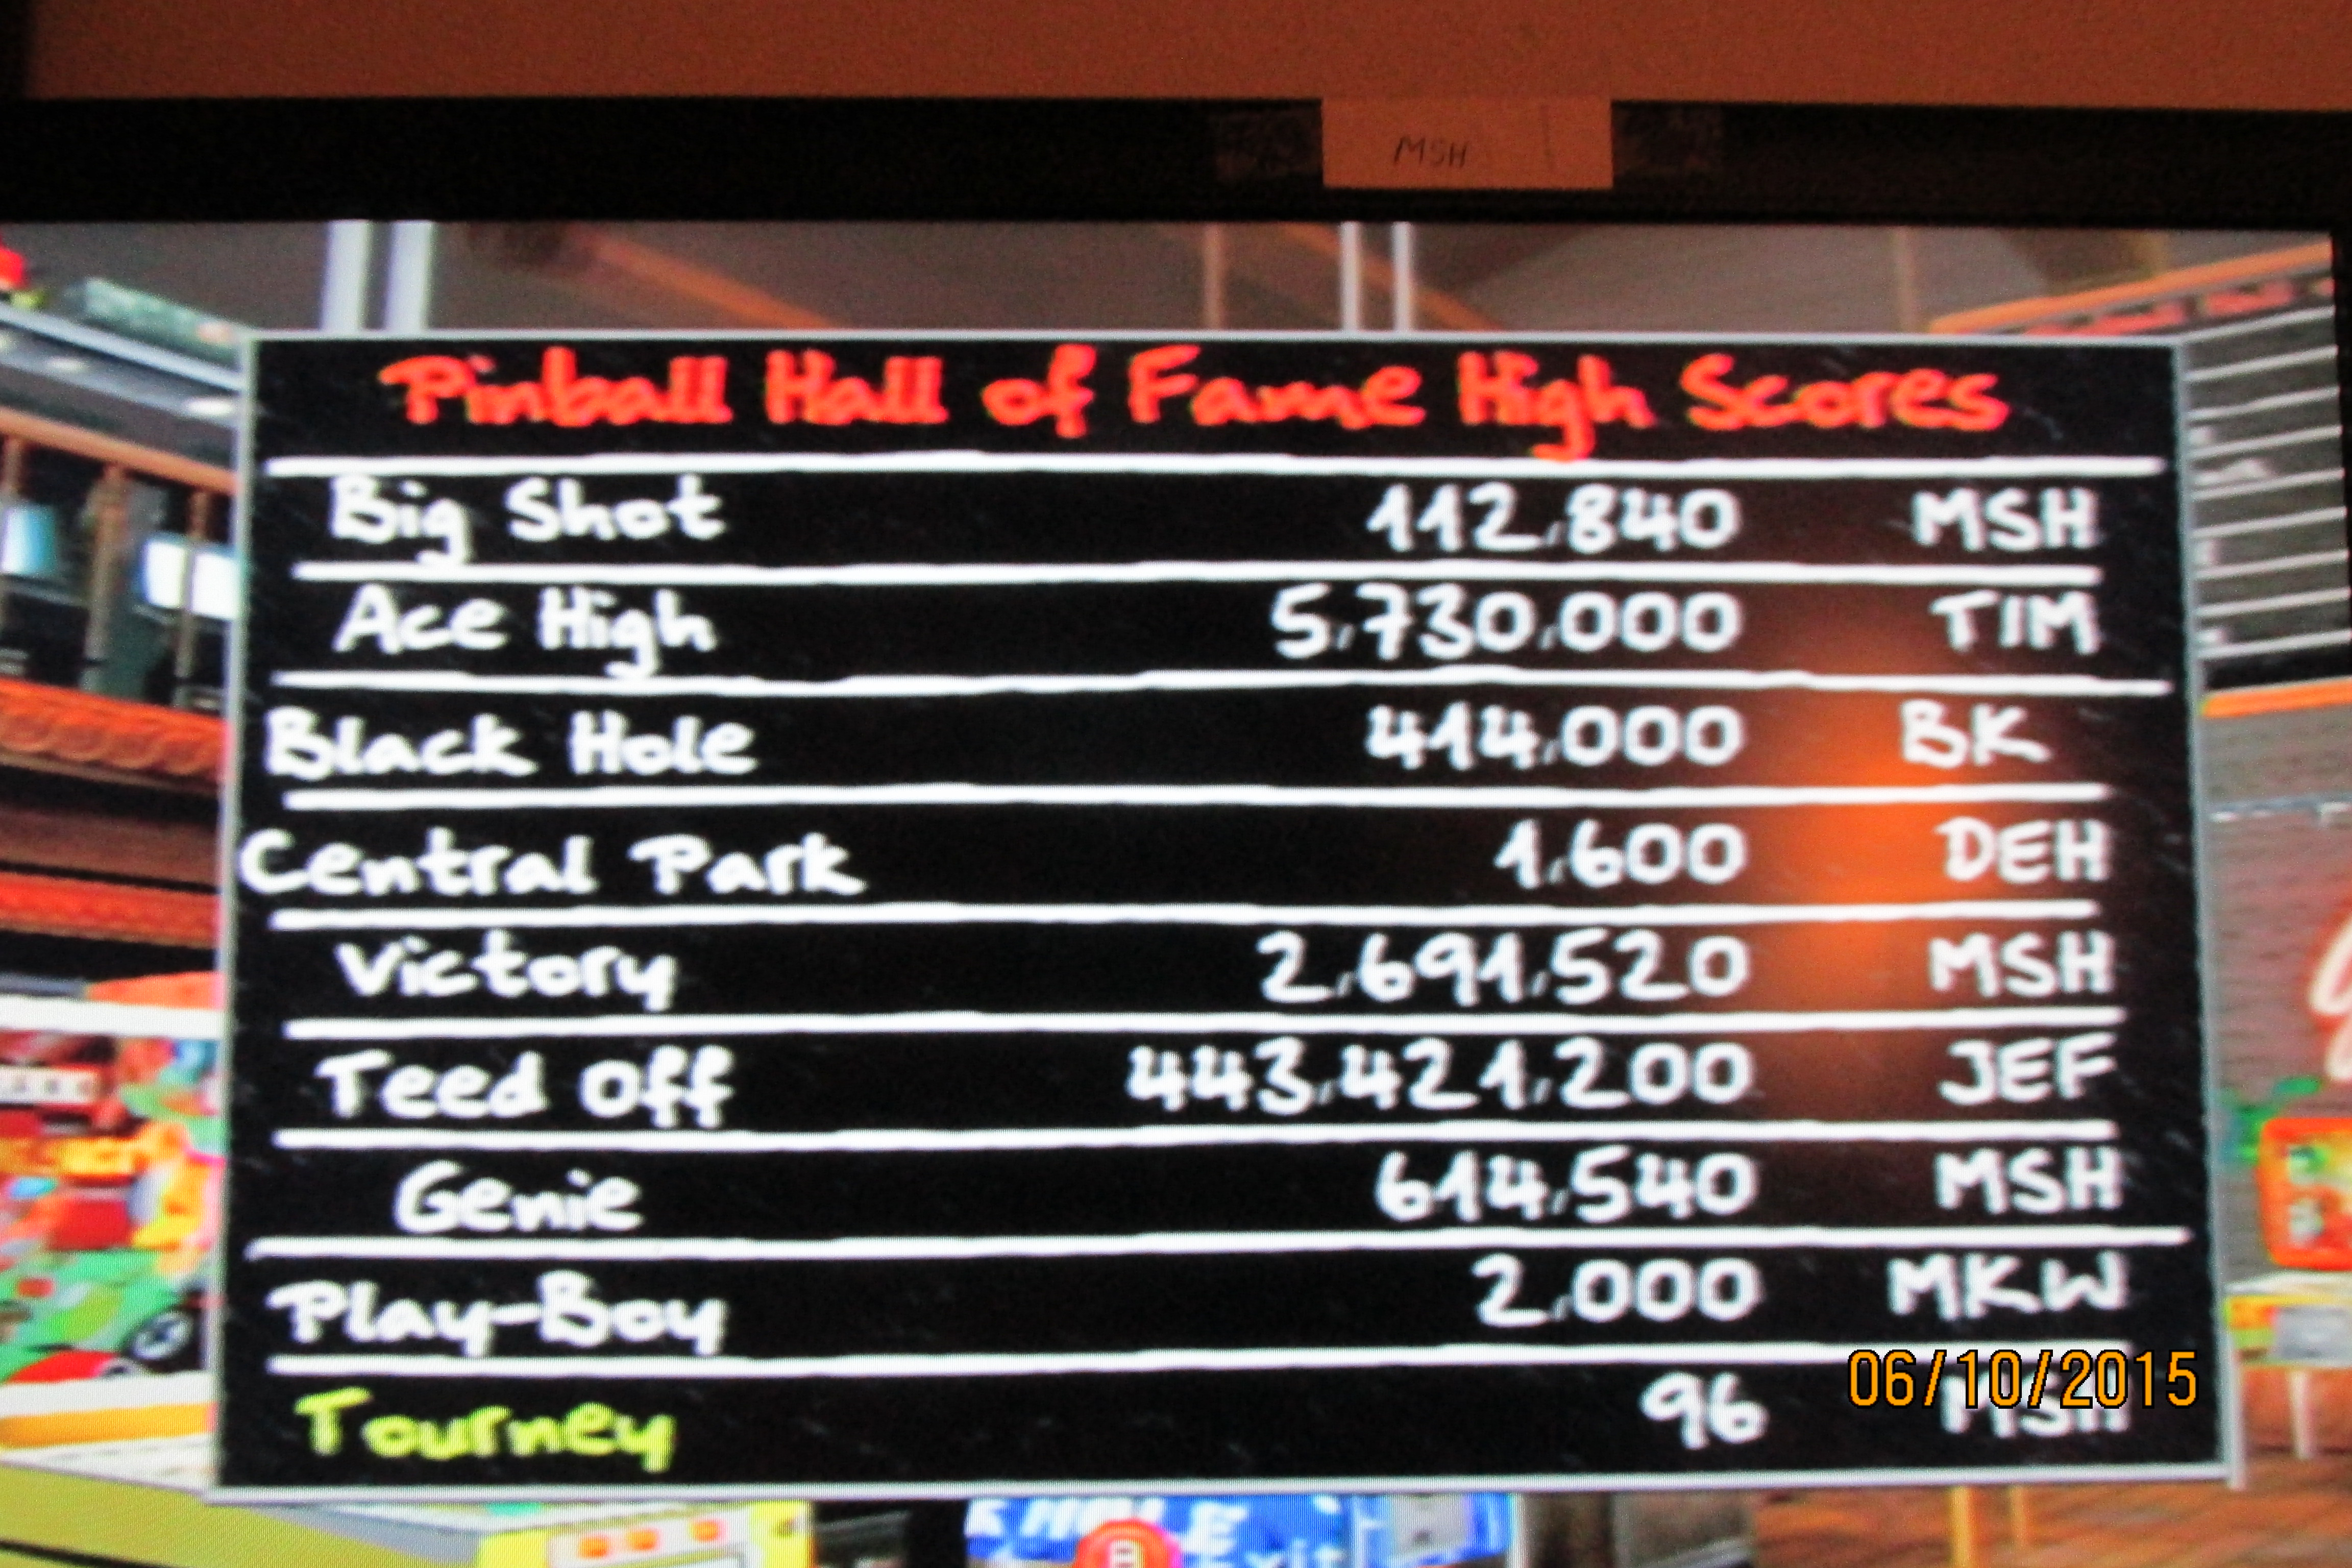 Mark: Pinball Hall of Fame: The Gottlieb Collection: Genie [5 Balls] (GameCube) 614,540 points on 2015-06-28 19:14:27